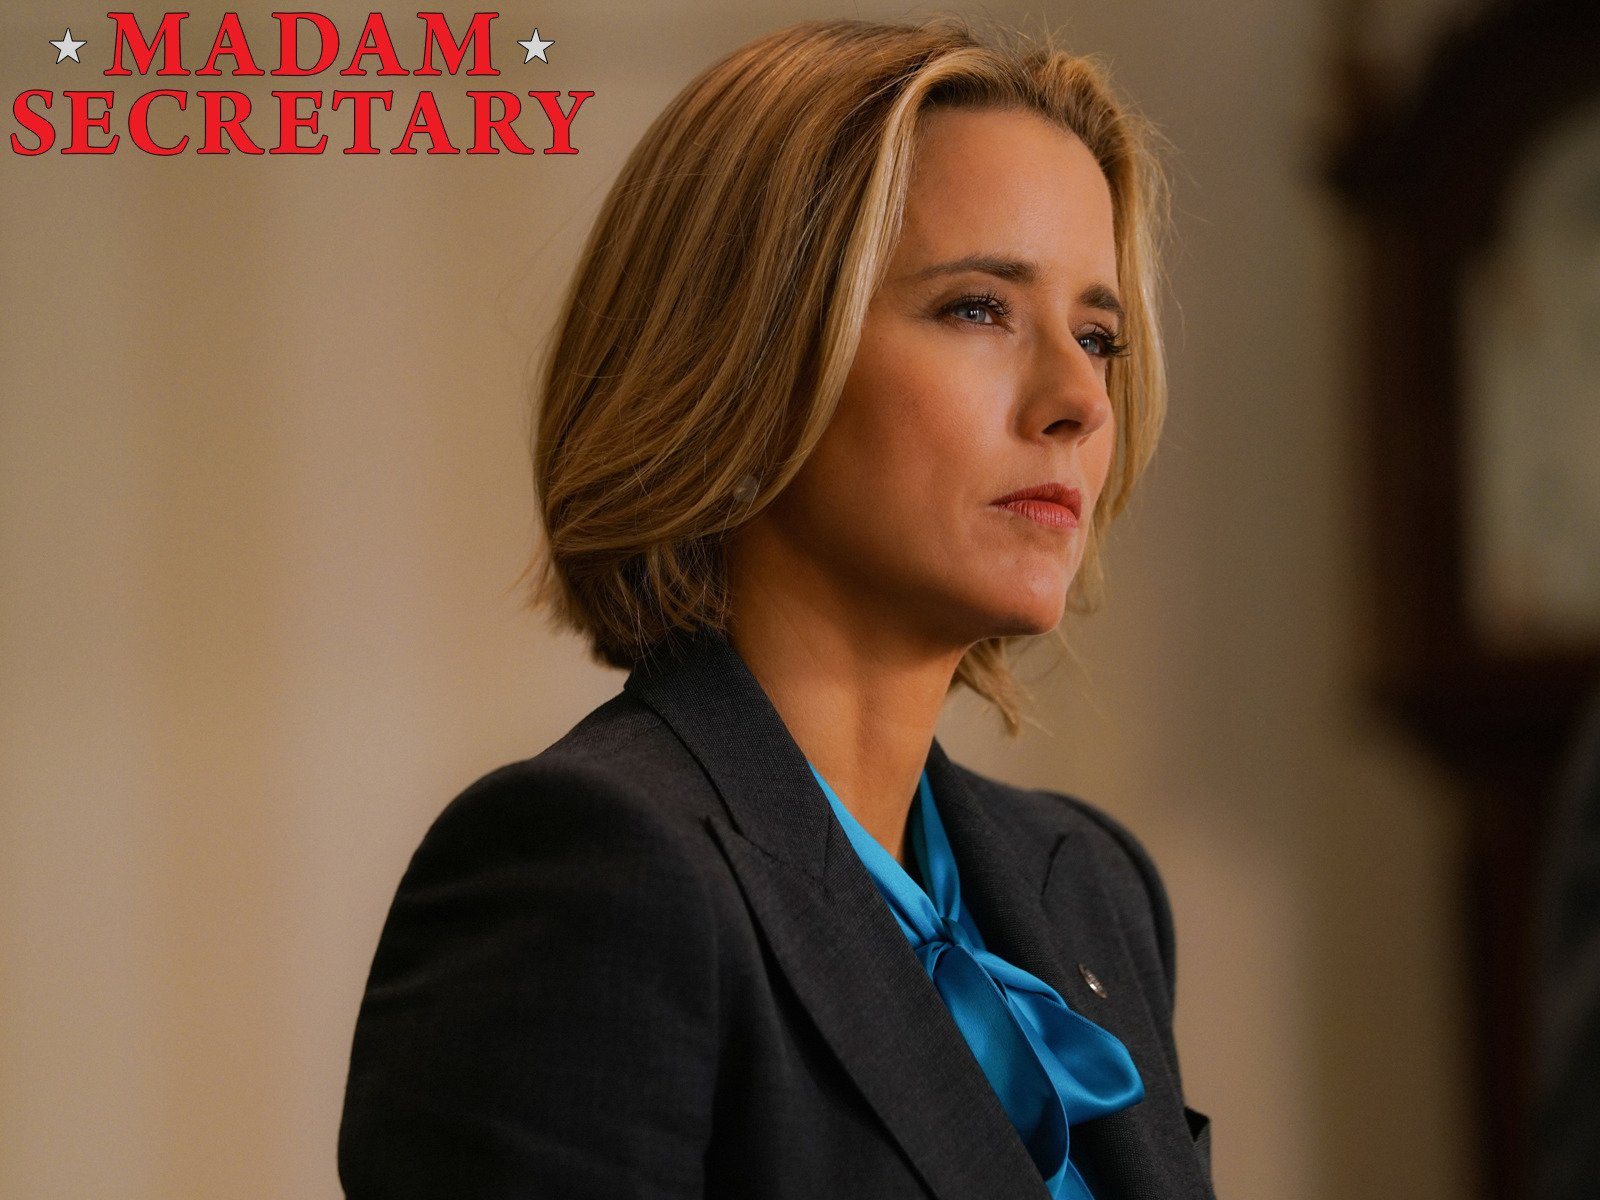 madam secretary season 4 episode 1 free download